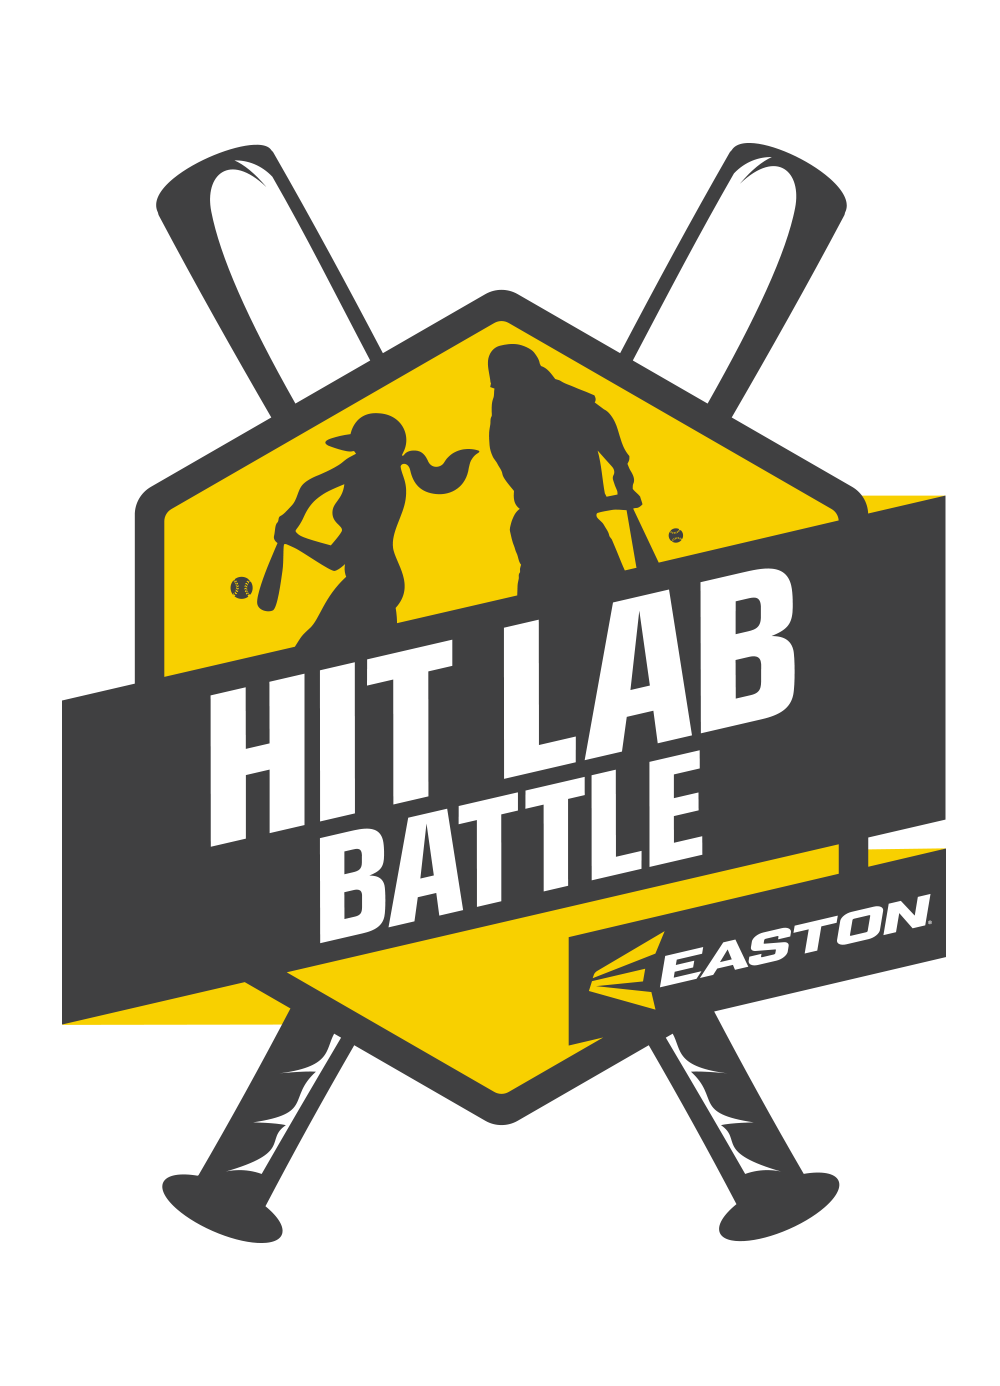 Clipart latest local hits svg transparent download EASTON CALLS UPON LOCAL HIGH SCHOOLS TO BATTLE FOR HITTING SUPREMACY ... svg transparent download